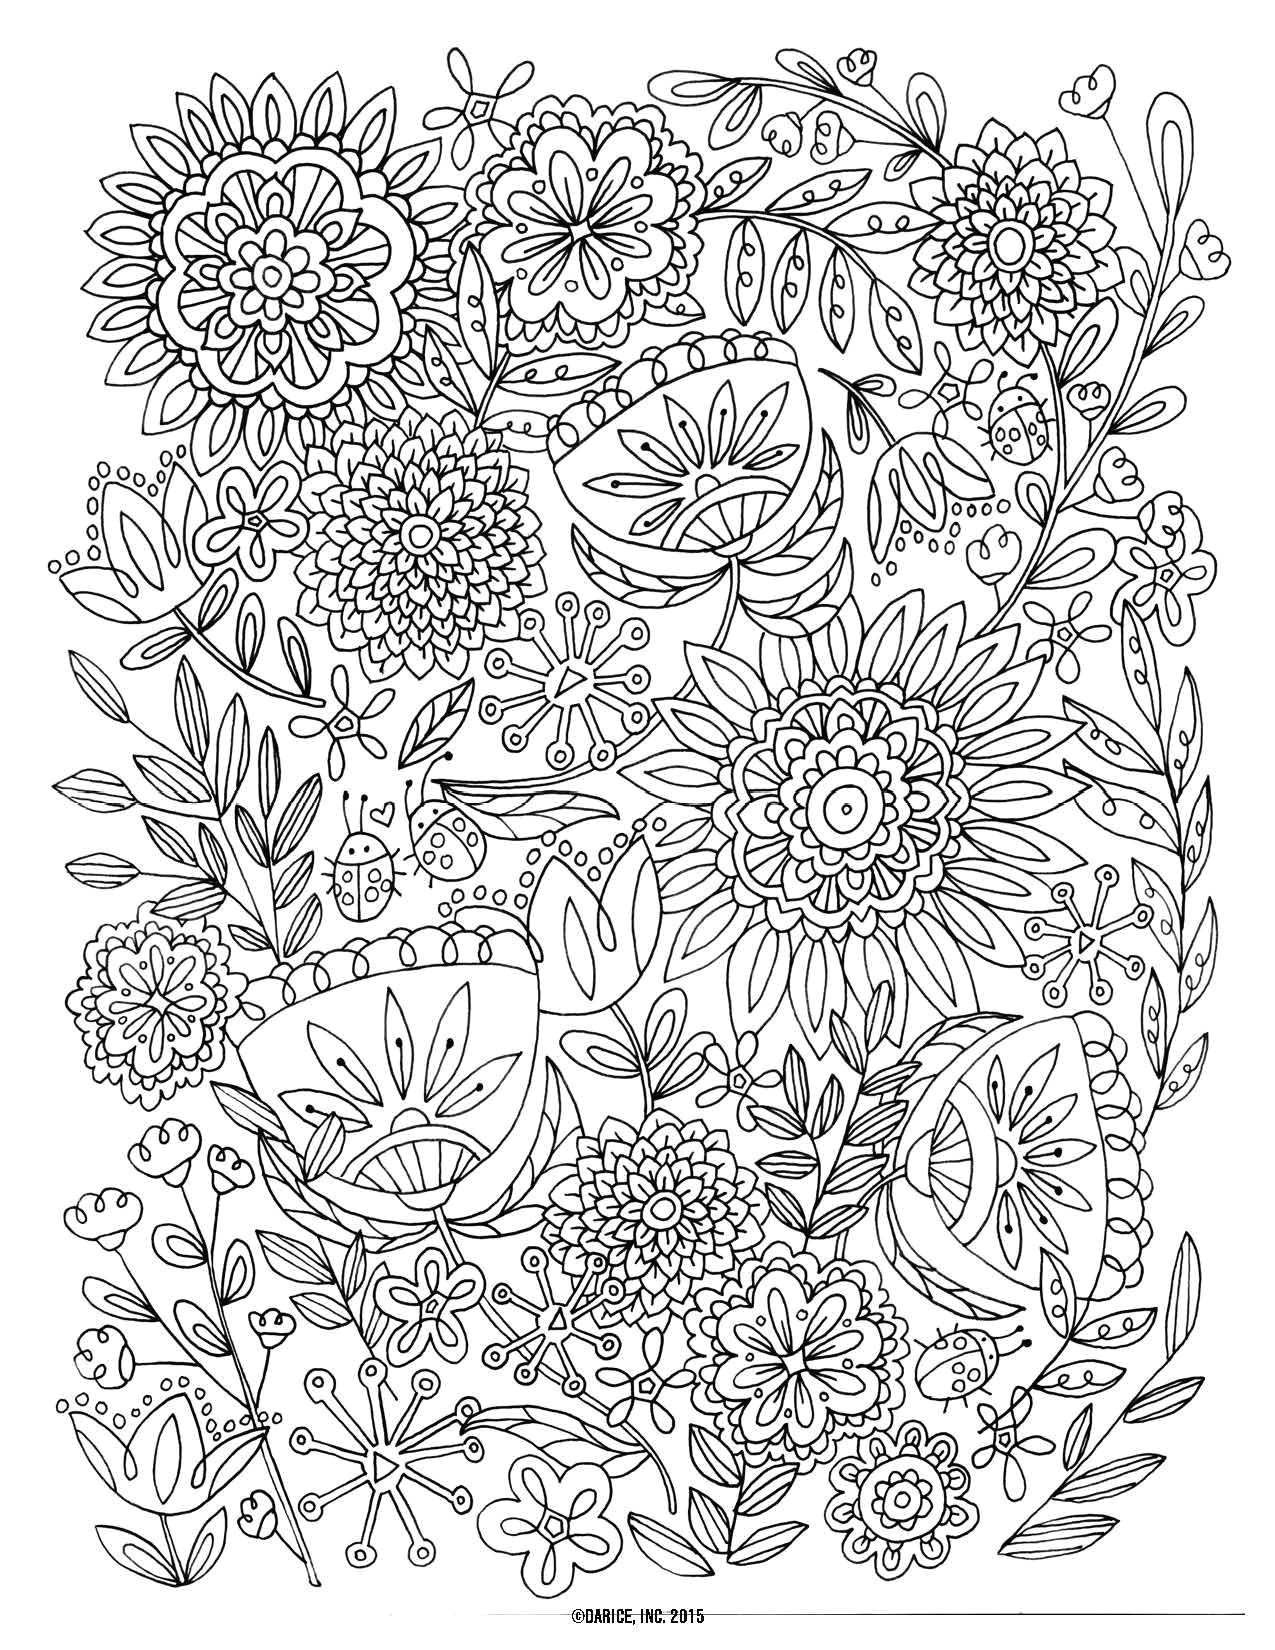 drawing doodling and coloring unique cool vases flower vase coloring page pages flowers in a top